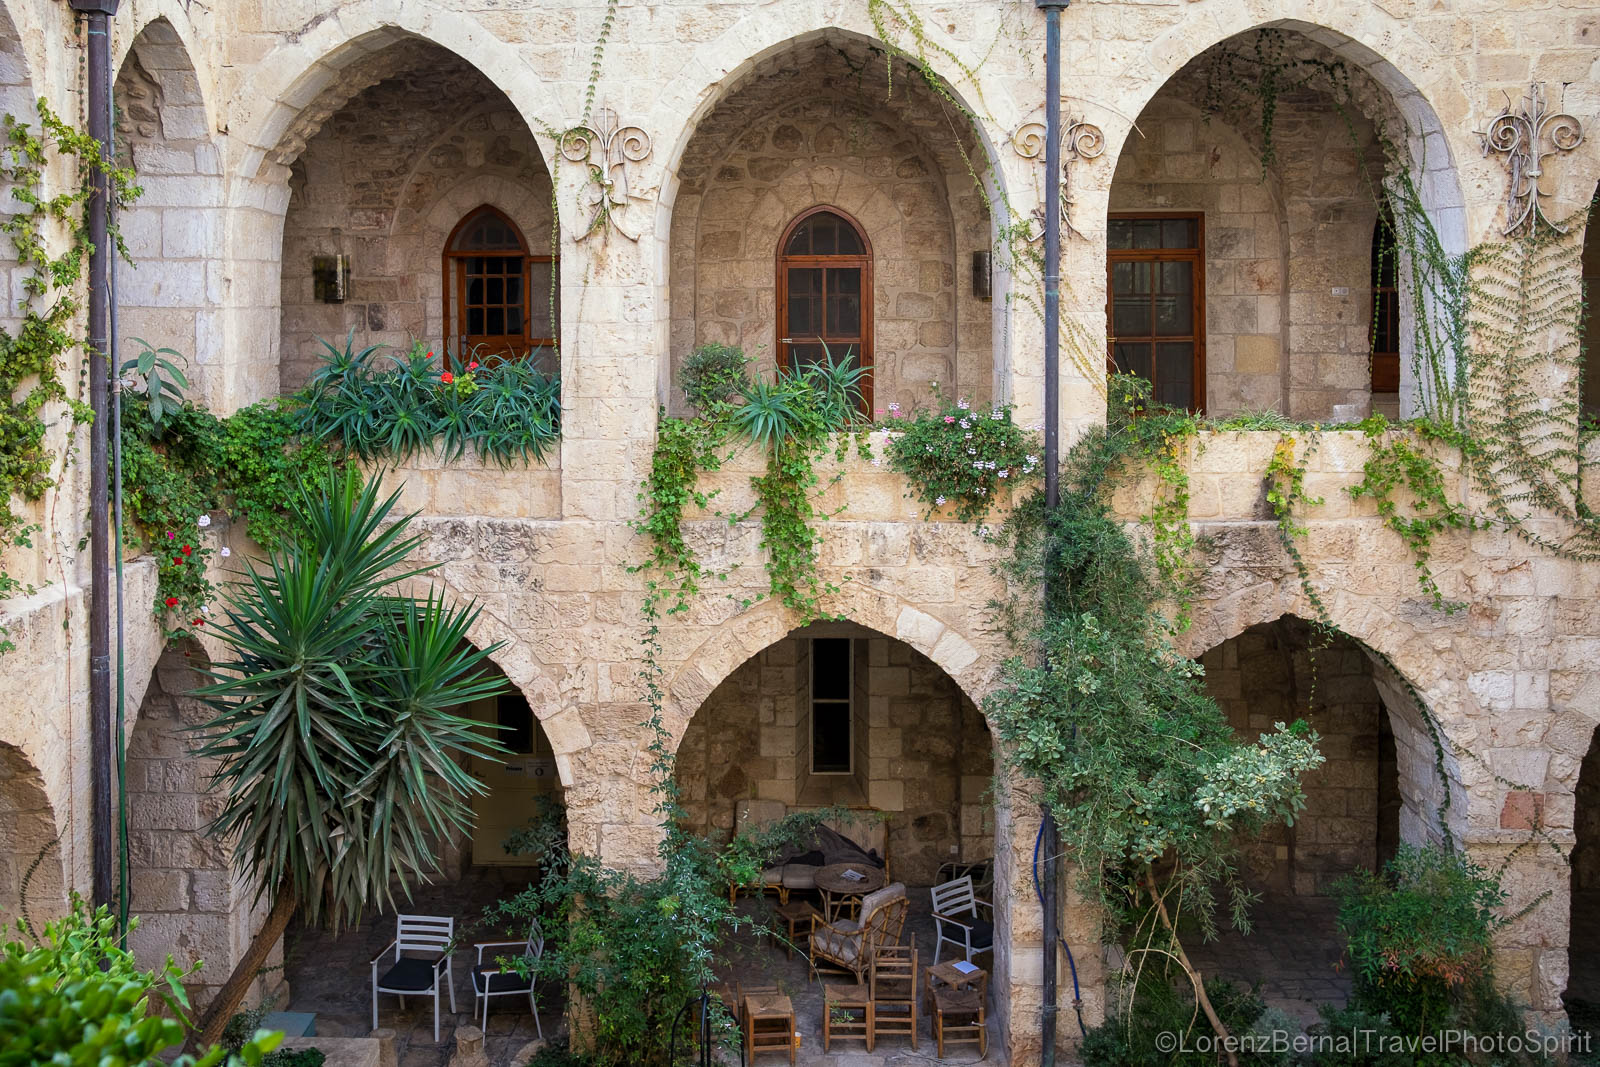 The inside patio of the Lutheran Church of the Redeemer, a protestant church located in the Old City, Jerusalem, Israel.